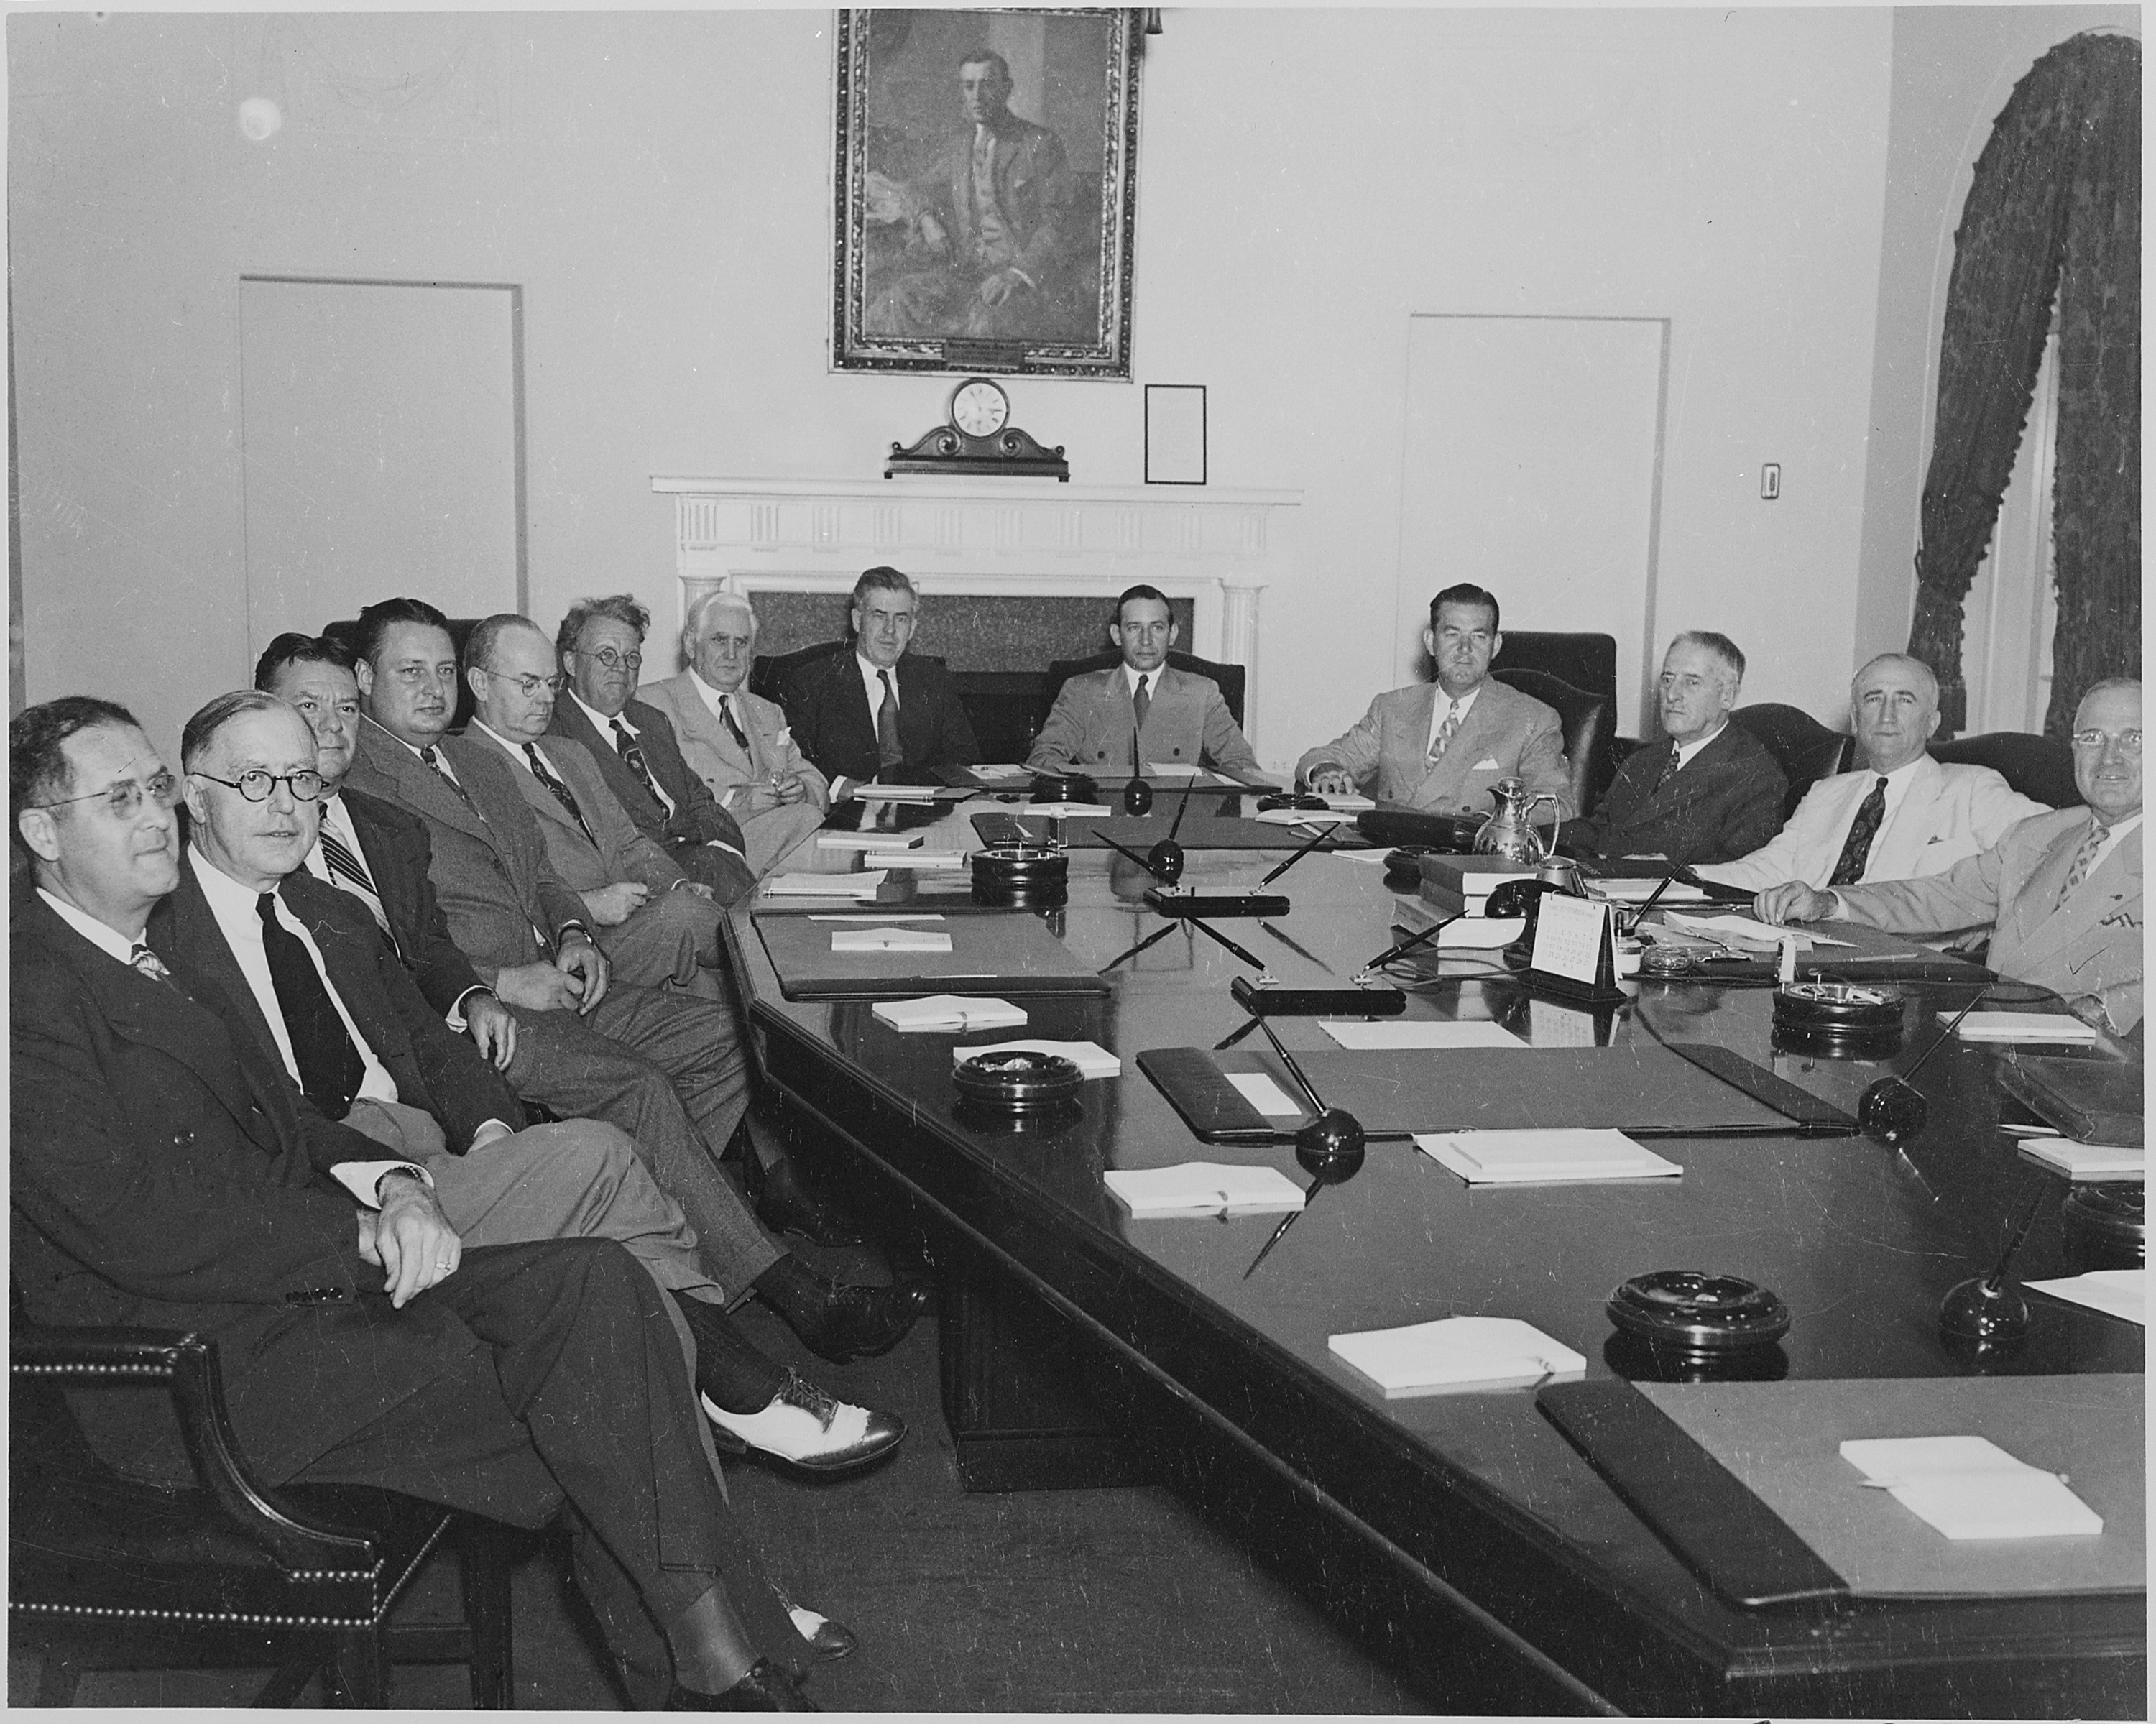 File:Photograph Of Cabinet Meeting At The White House, (from Left To Right